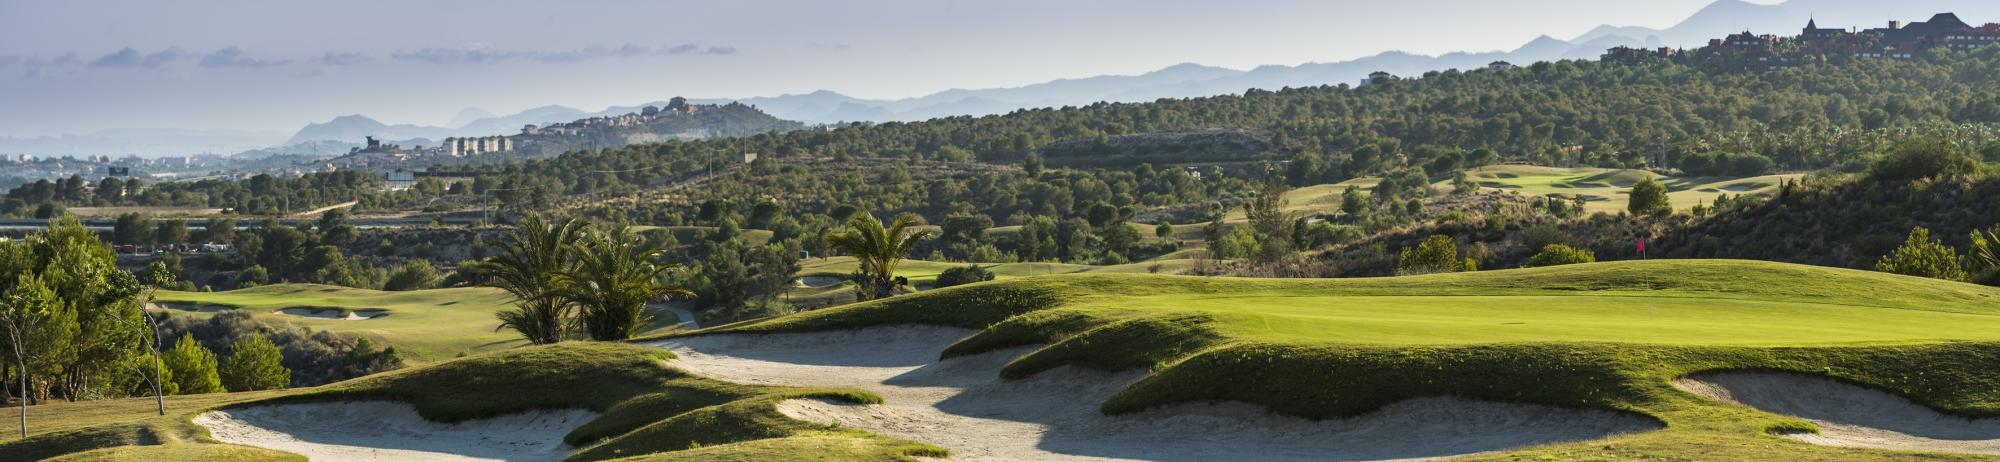 Villaitana Poniente Golf Course includes some of the finest golf course within Costa Blanca